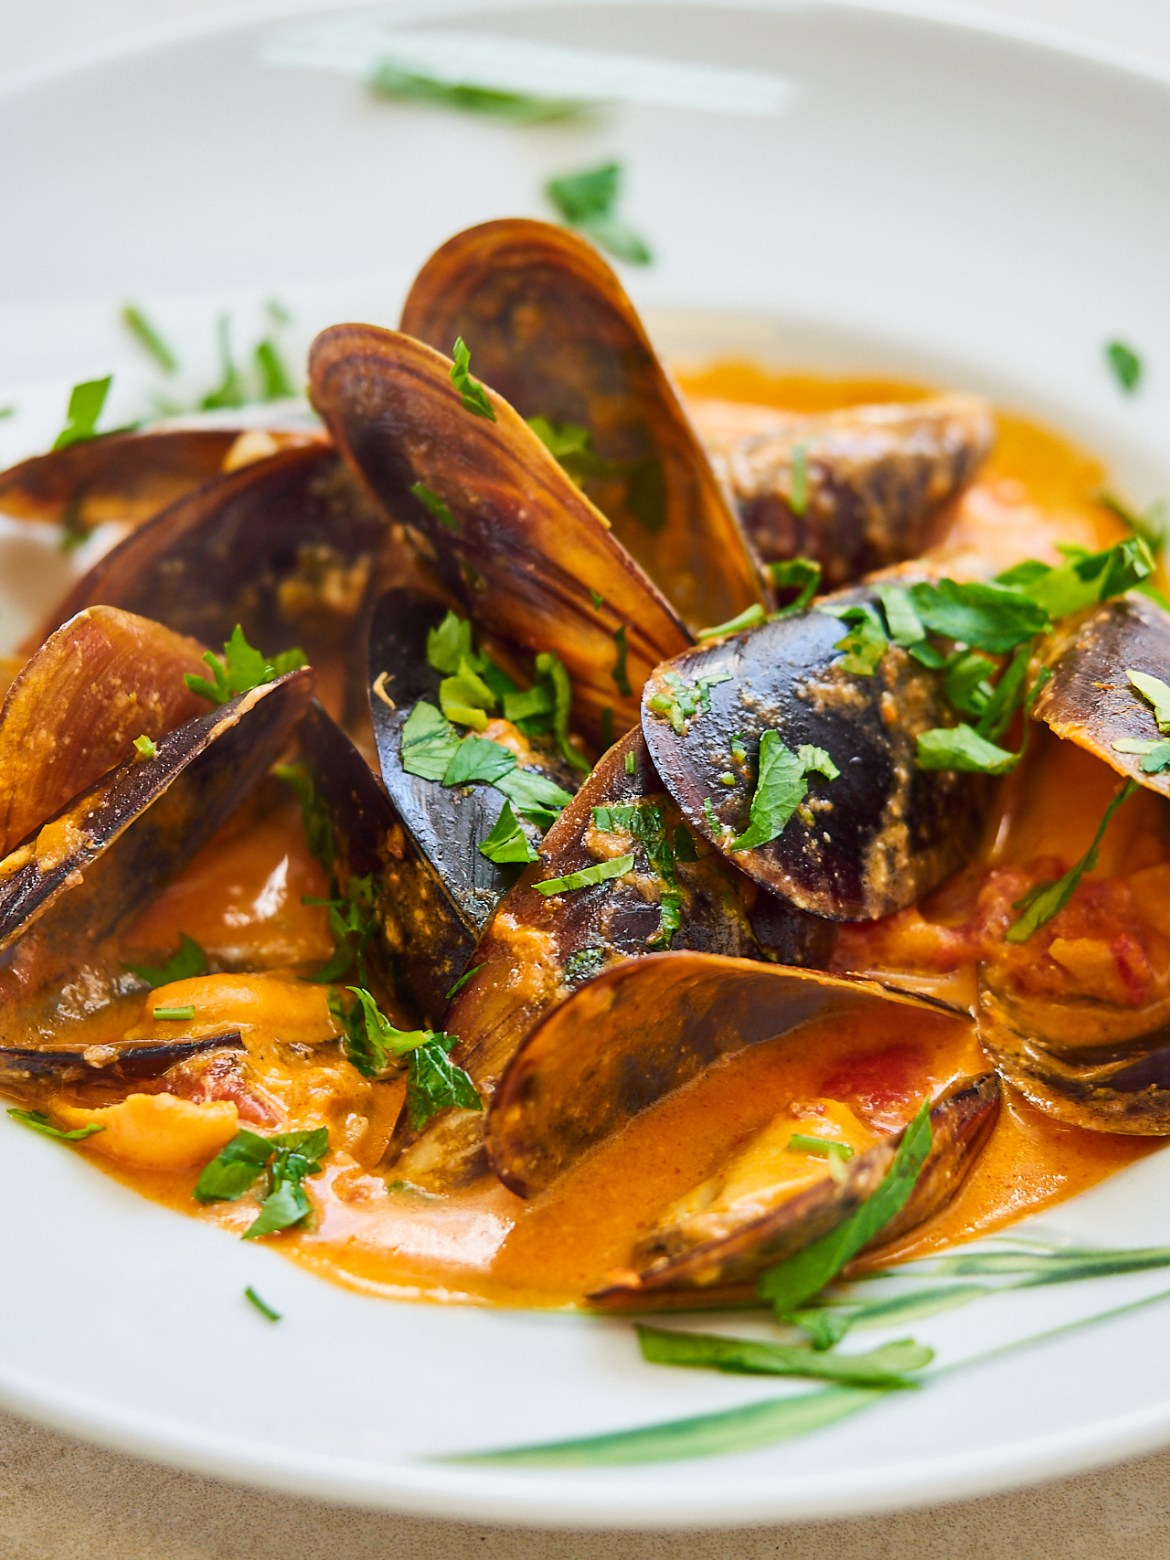 how to serve mussels in tomato sauce